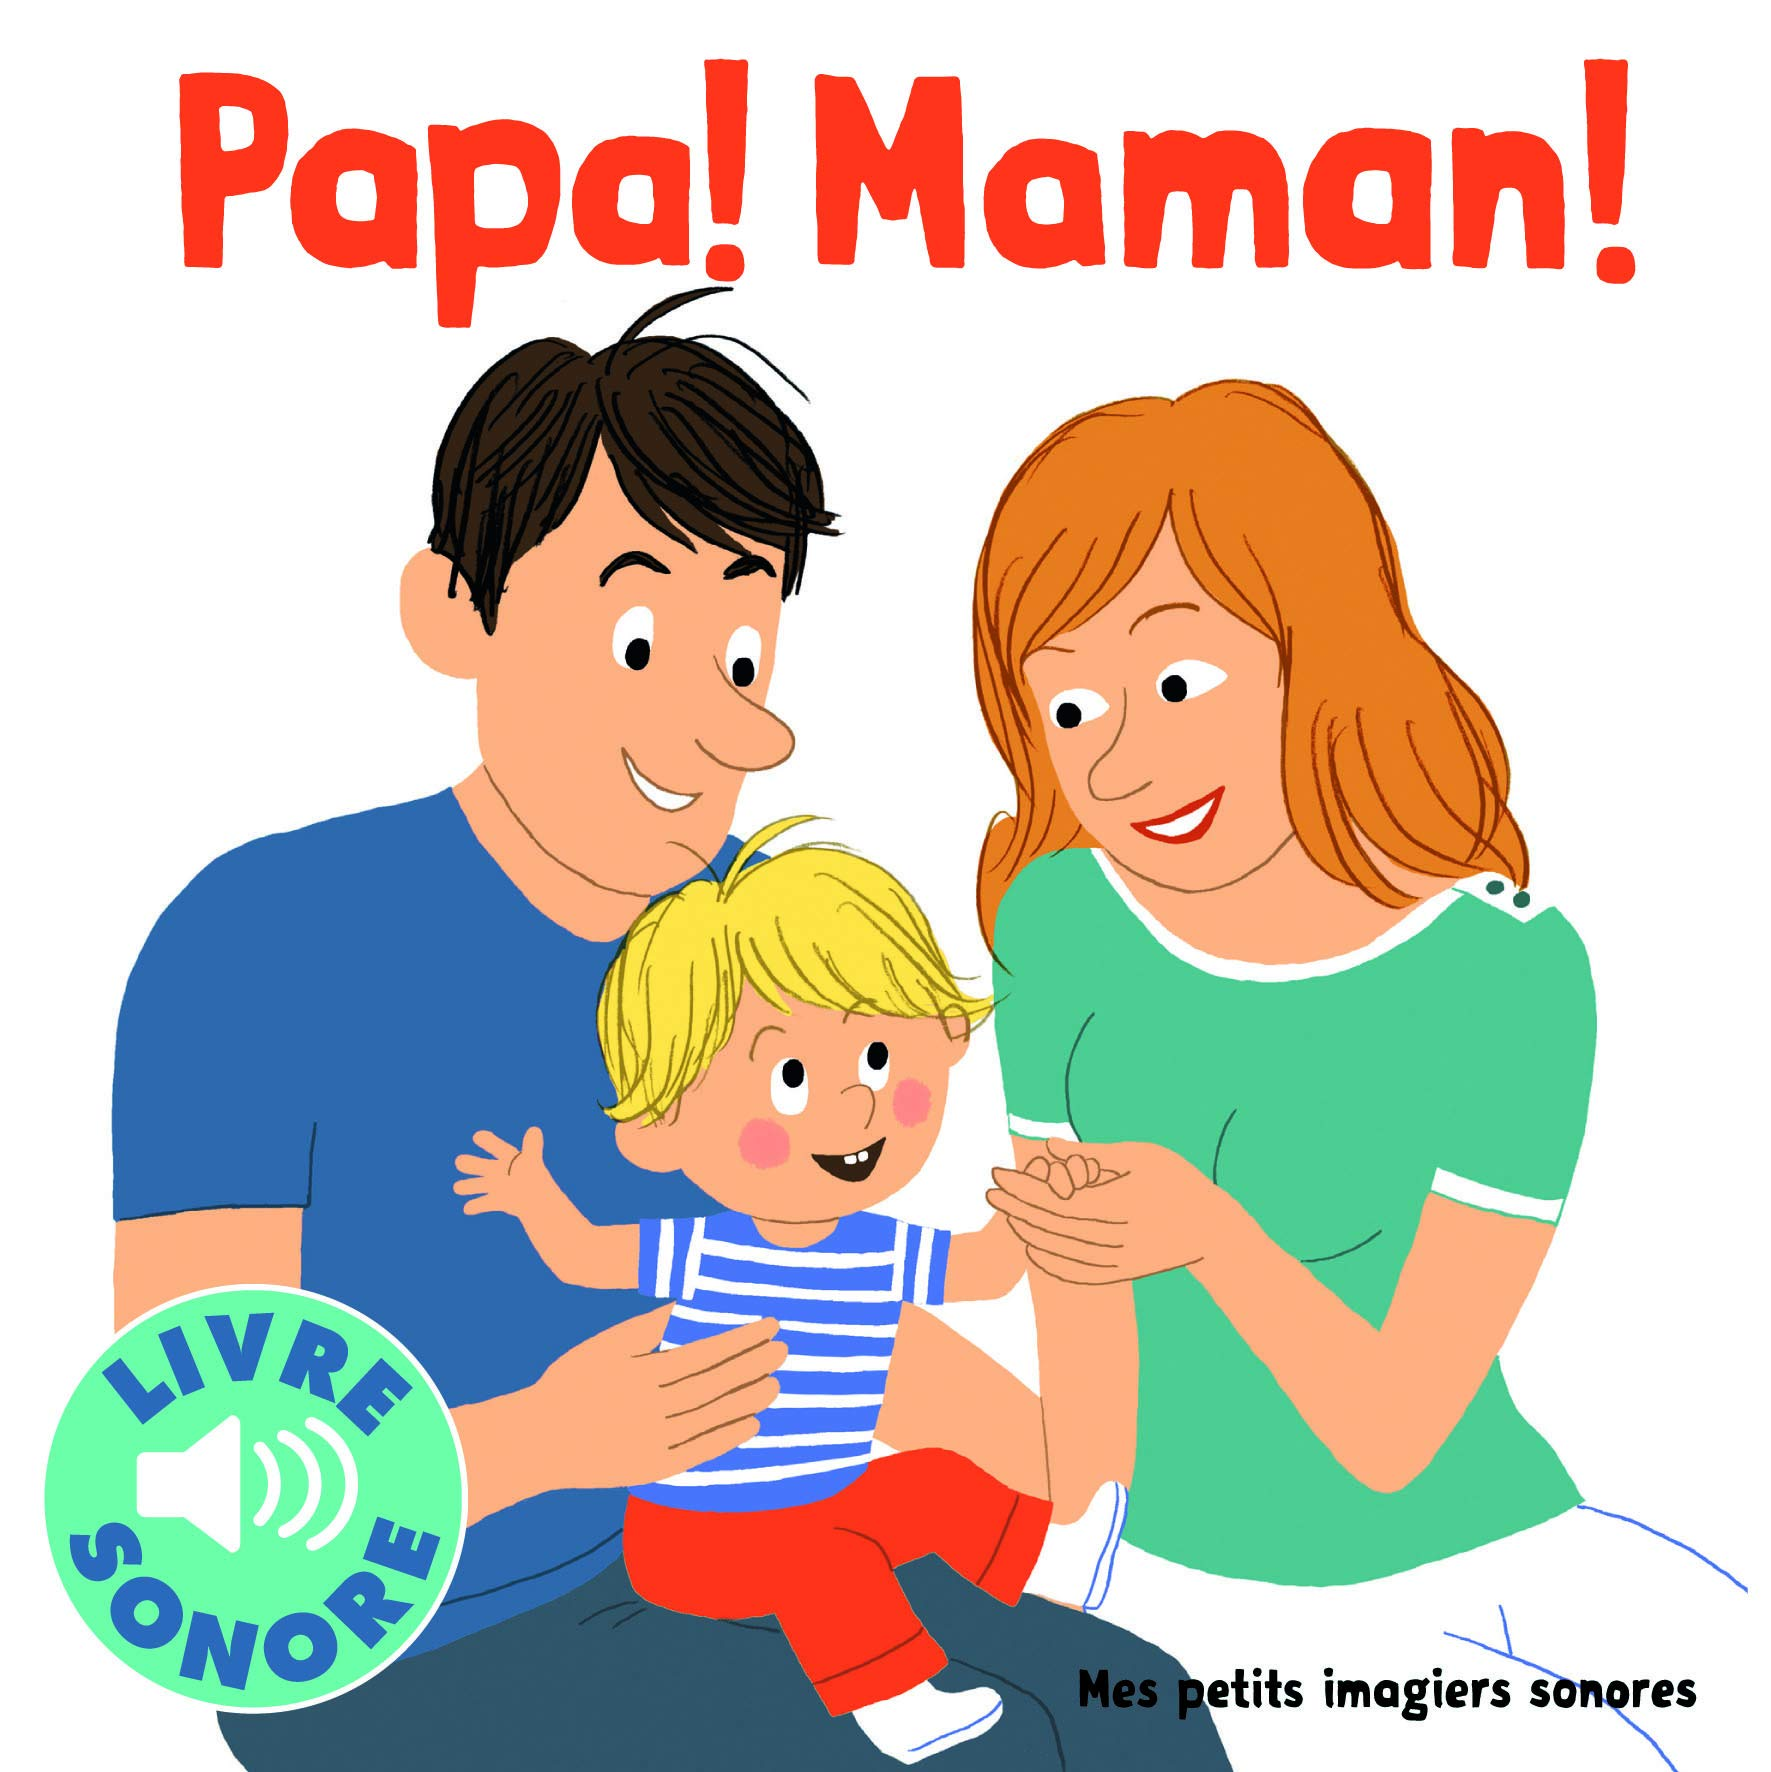 Papa Maman 6 Sons A Ecouter 6 Images A Regarder Mes Petits Imagiers Sonores French Edition Collectif Durbiano Lucie 9782070645473 Amazon Com Books